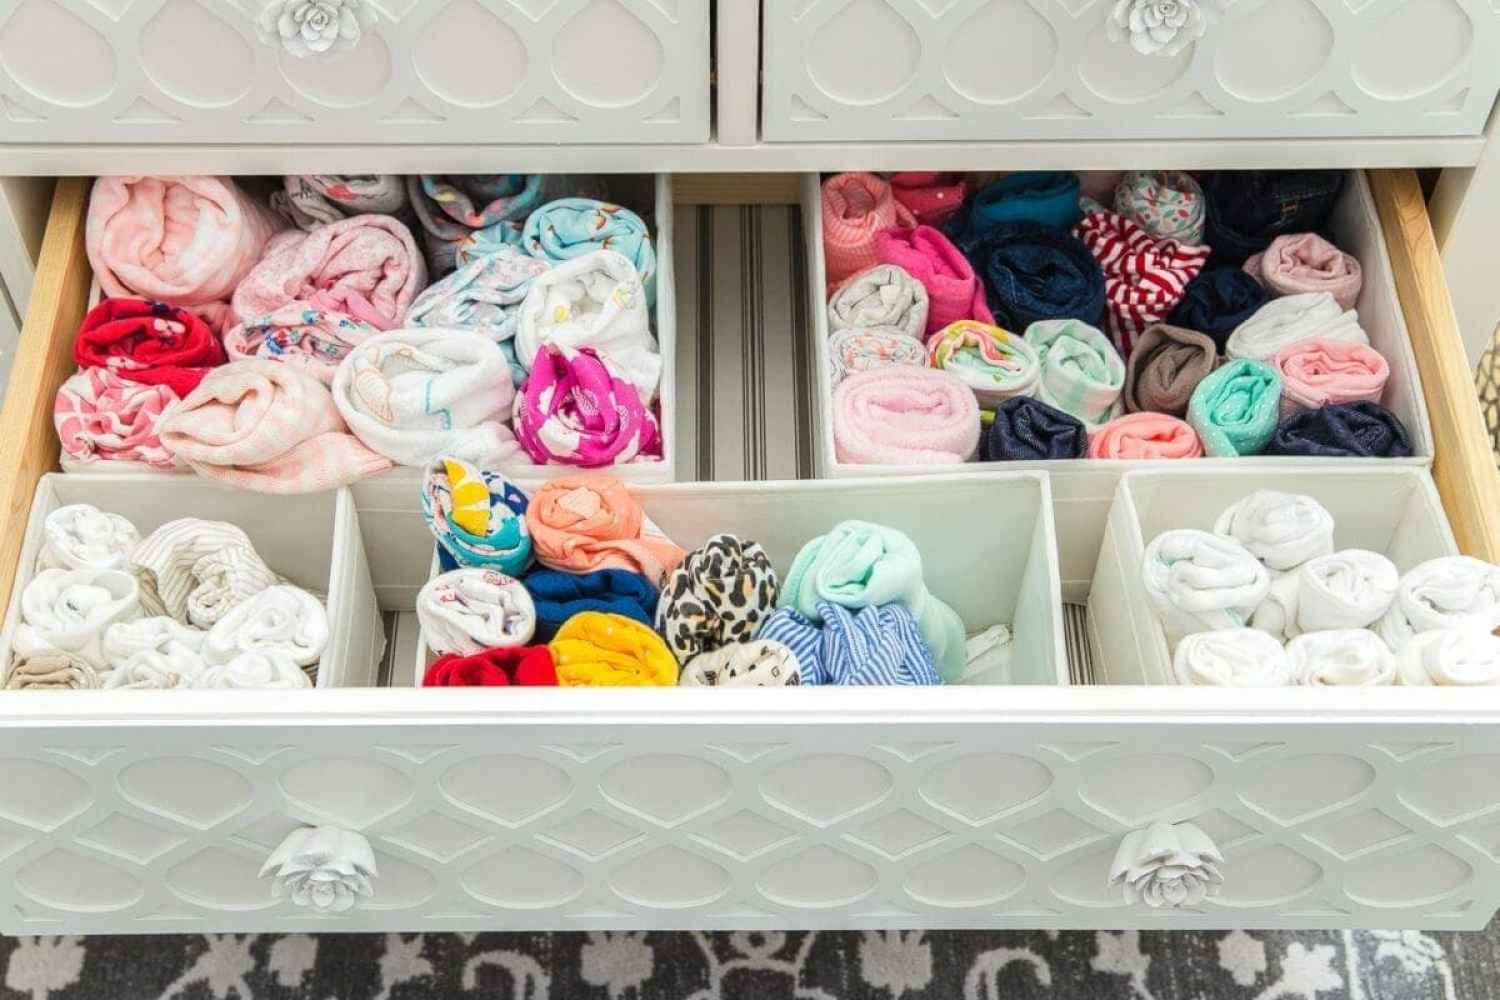 Nursery Organization | Dresser drawers with dividers to store baby clothes in categories